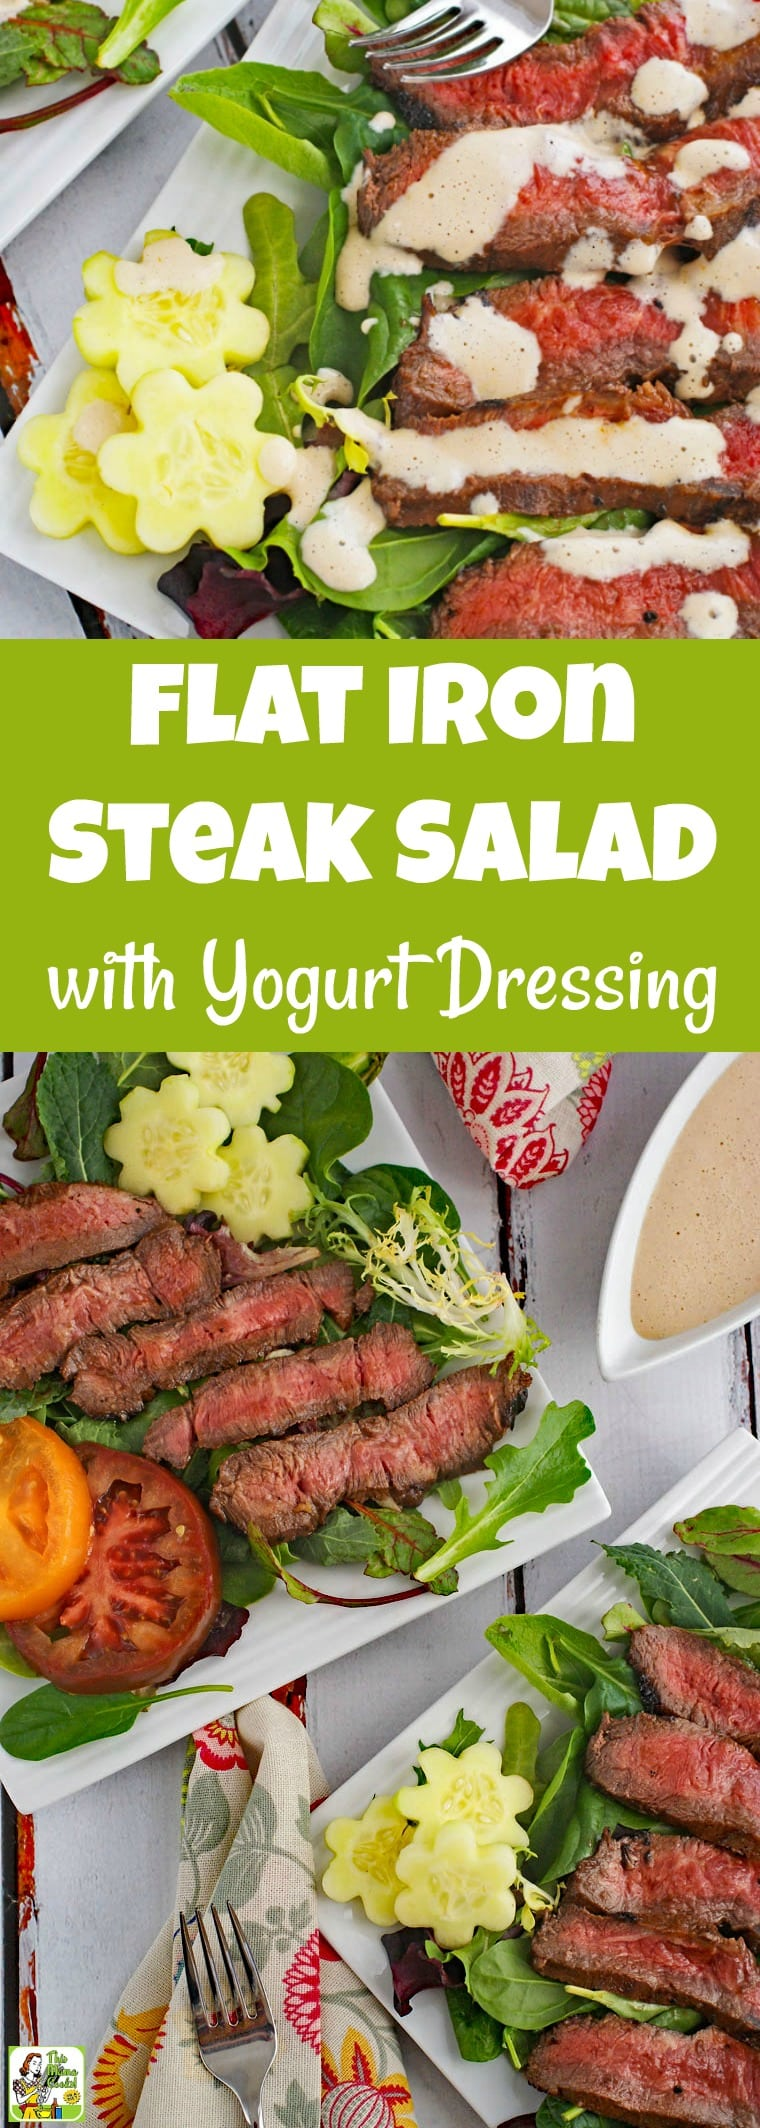 Flat Iron Steak Salad with Yogurt Dressing Recipe